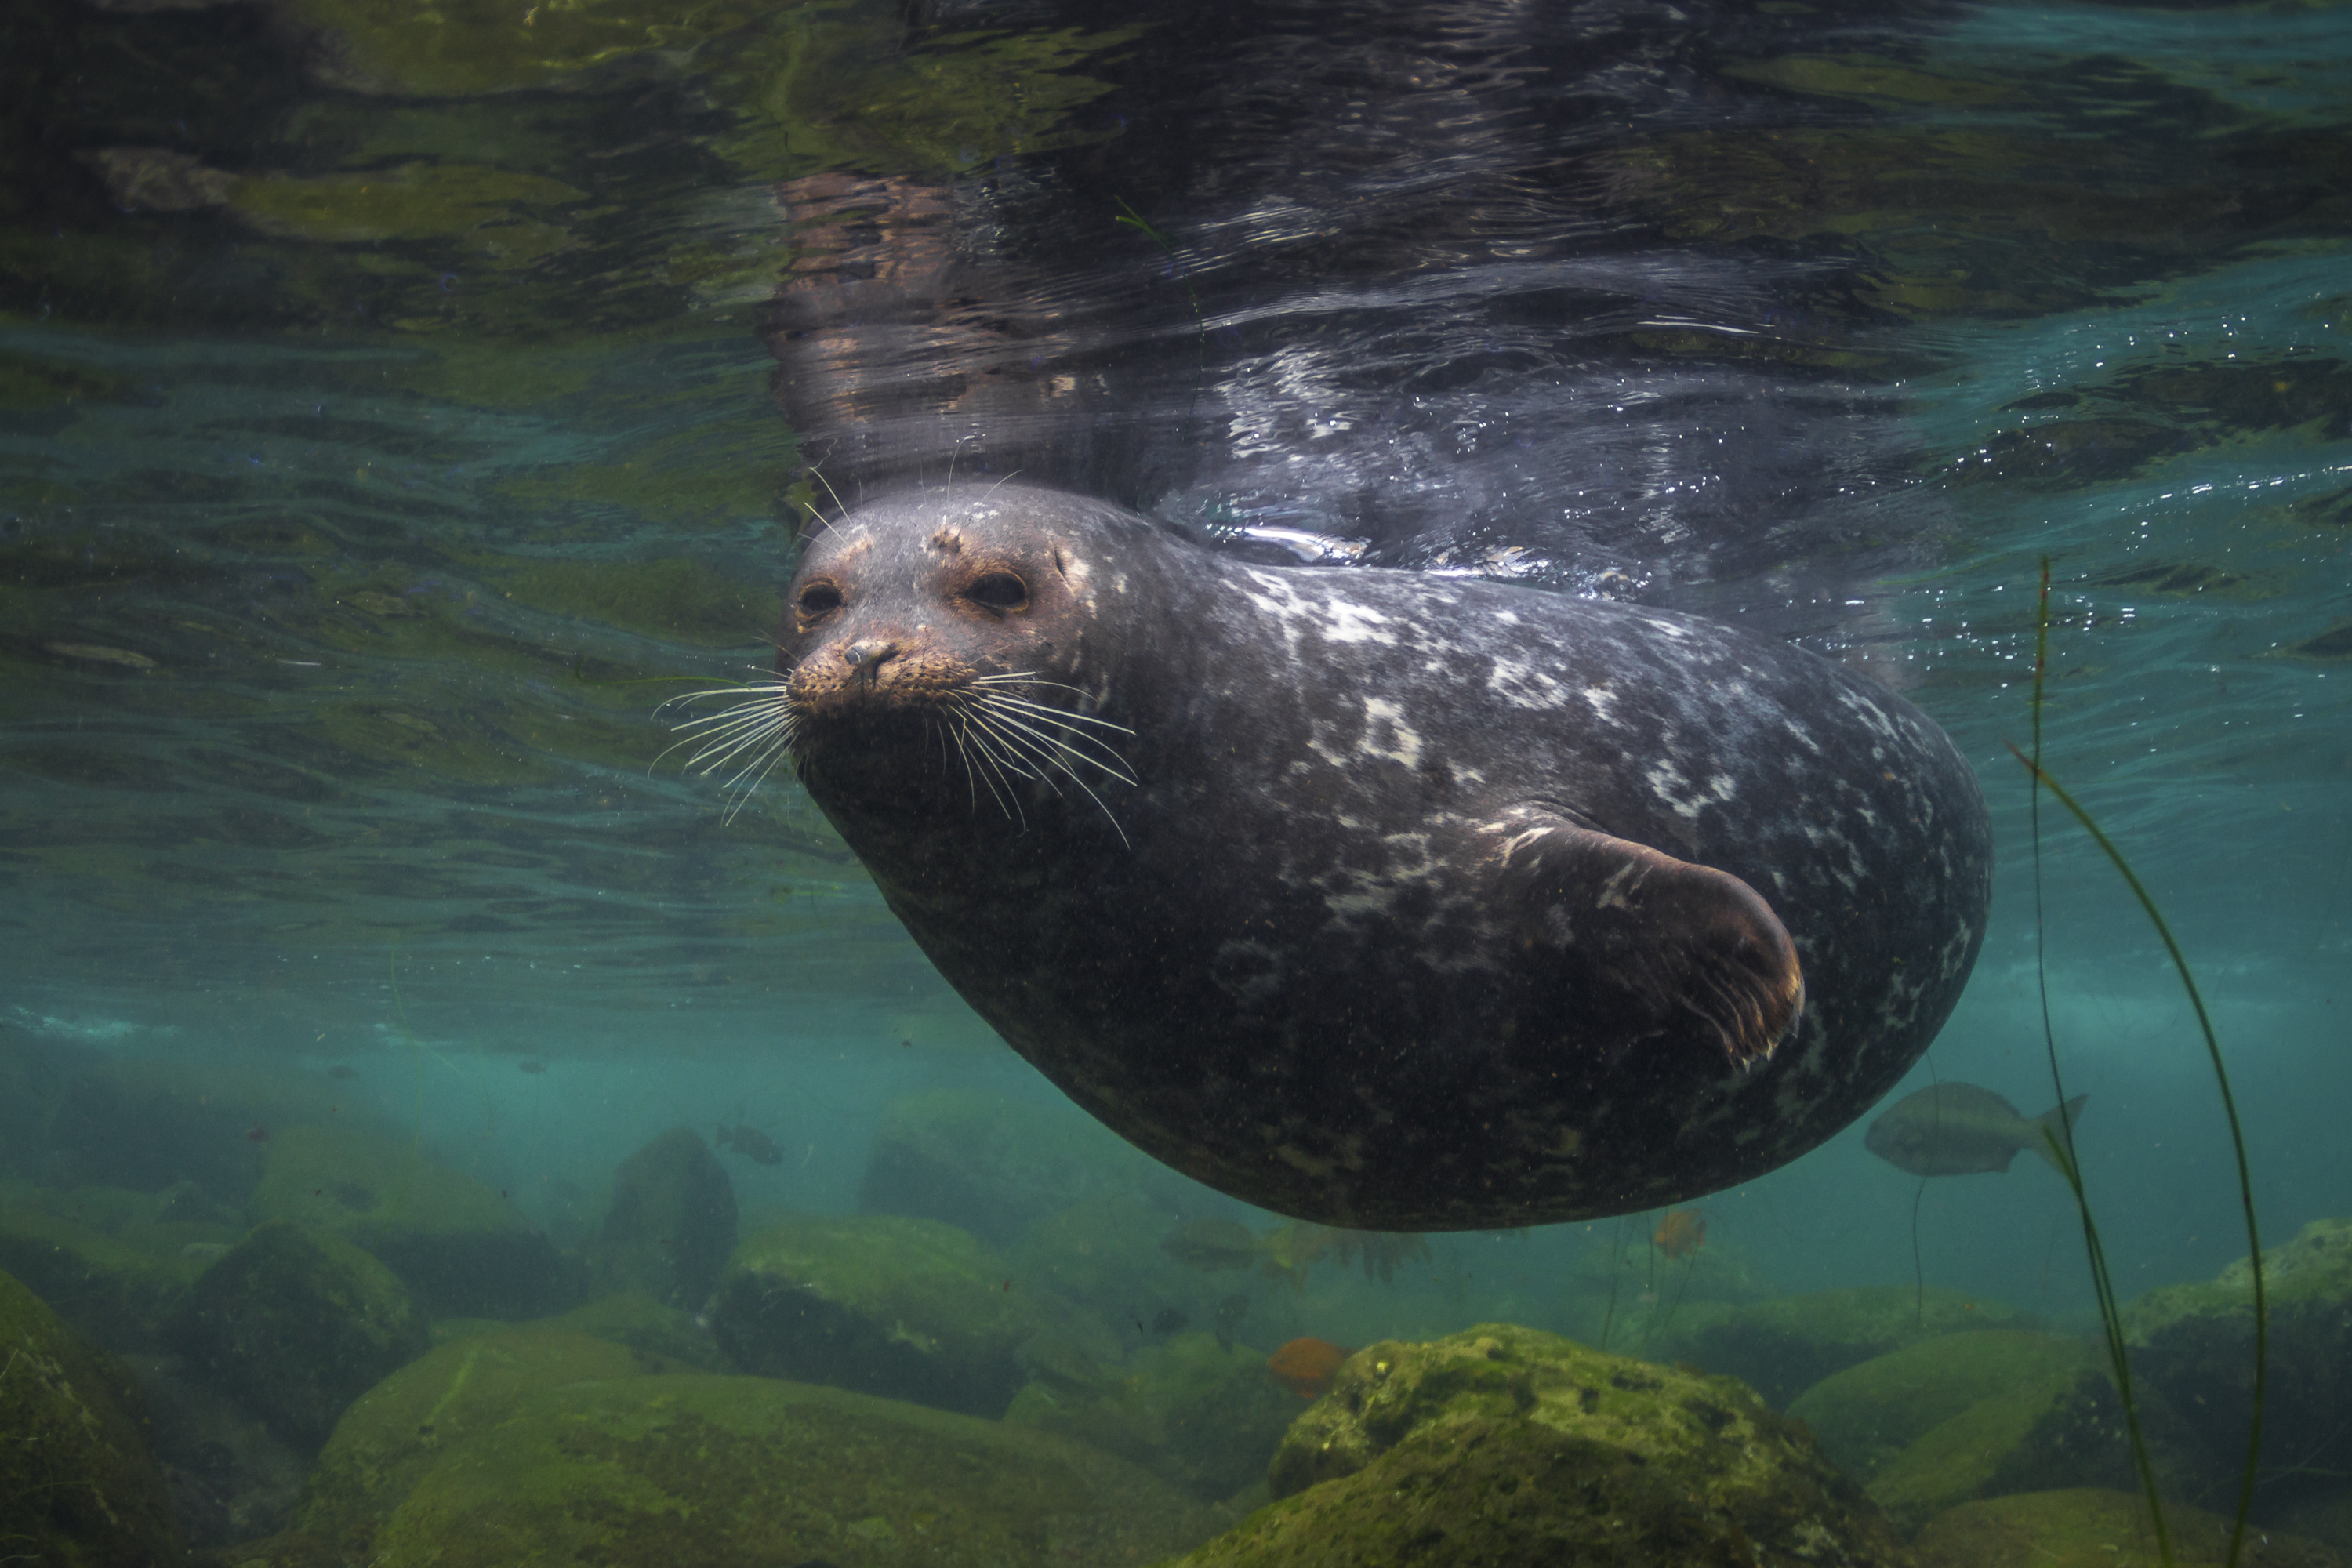 Harbor seal at La Jolla Cove in California, USA, by Frankie Grant